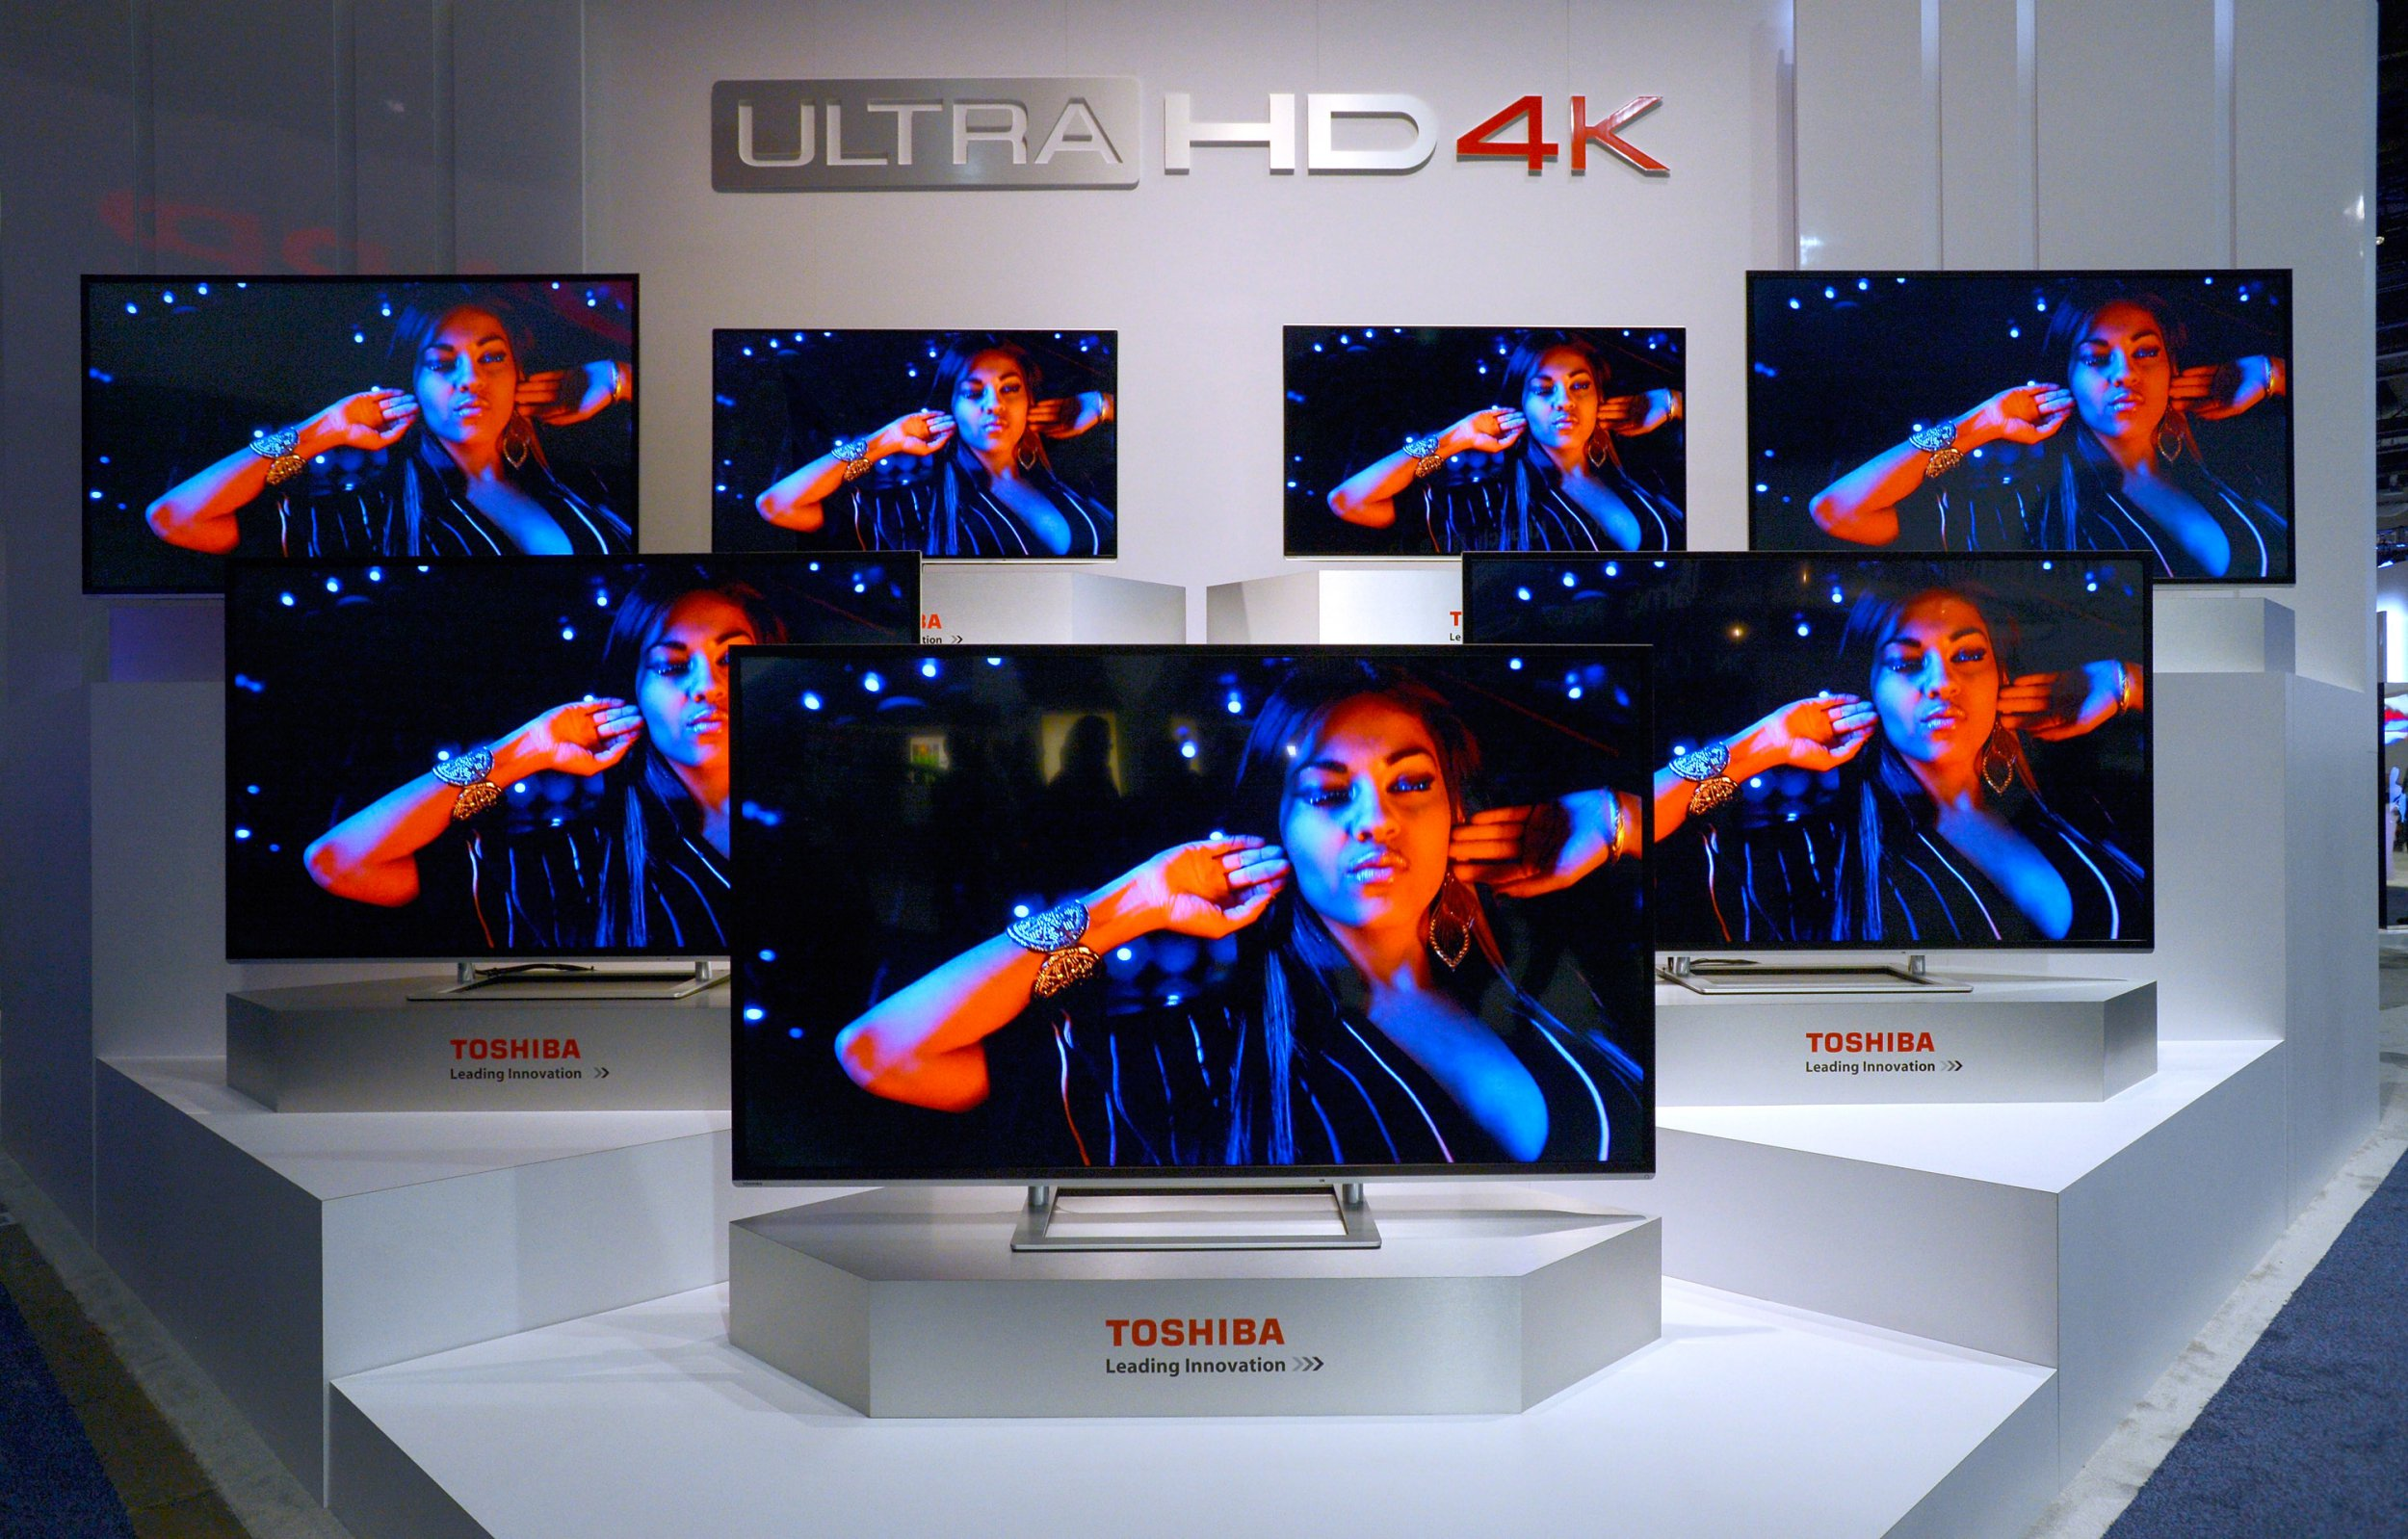 LAS VEGAS, NV - JANUARY 07: Toshiba Ultra HD 4K televisions are on display at the Toshiba booth at the 2014 International CES at the Las Vegas Convention Center on January 7, 2014 in Las Vegas, Nevada. CES, the world's largest annual consumer technology trade show, runs through January 10 and is expected to feature 3,200 exhibitors showing off their latest products and services to about 150,000 attendees. (Photo by David Becker/Getty Images)